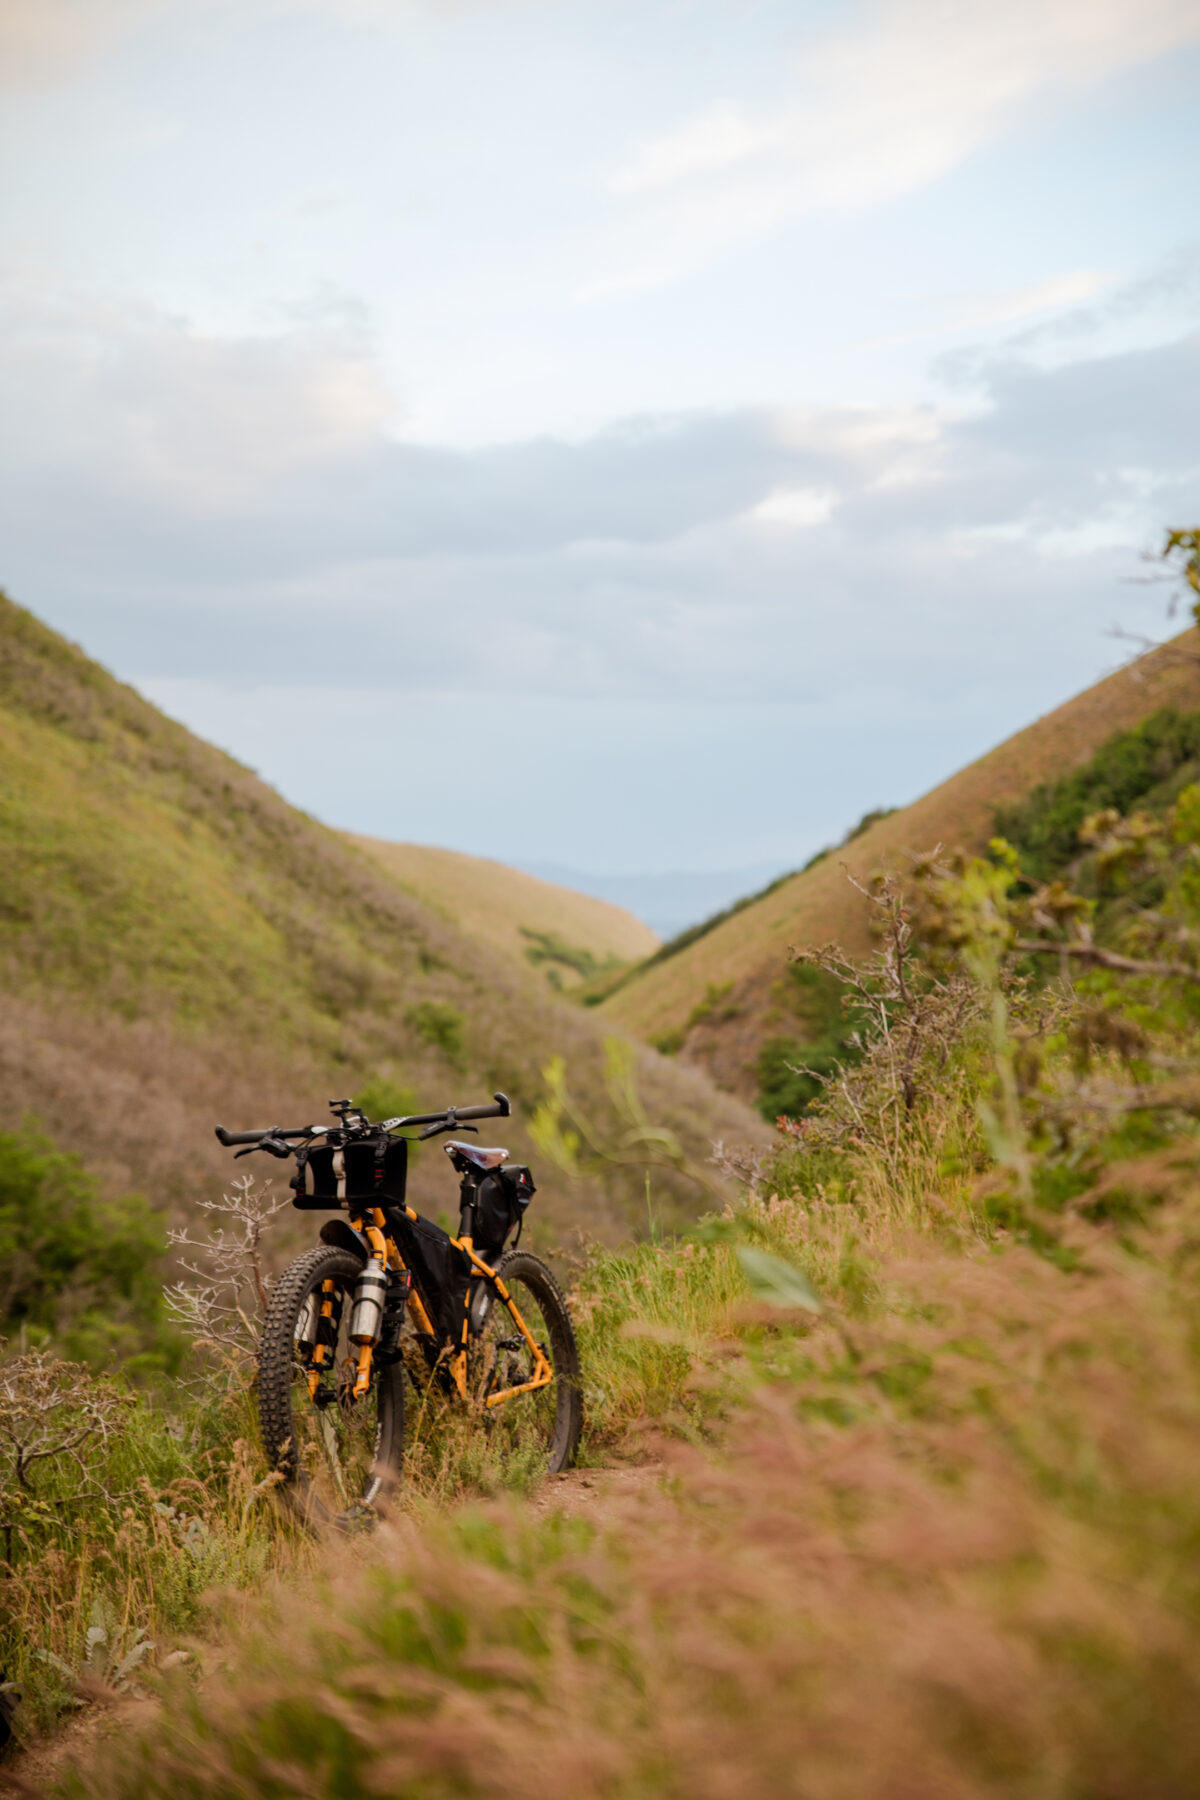 mountain bike on grassy trail in the hills